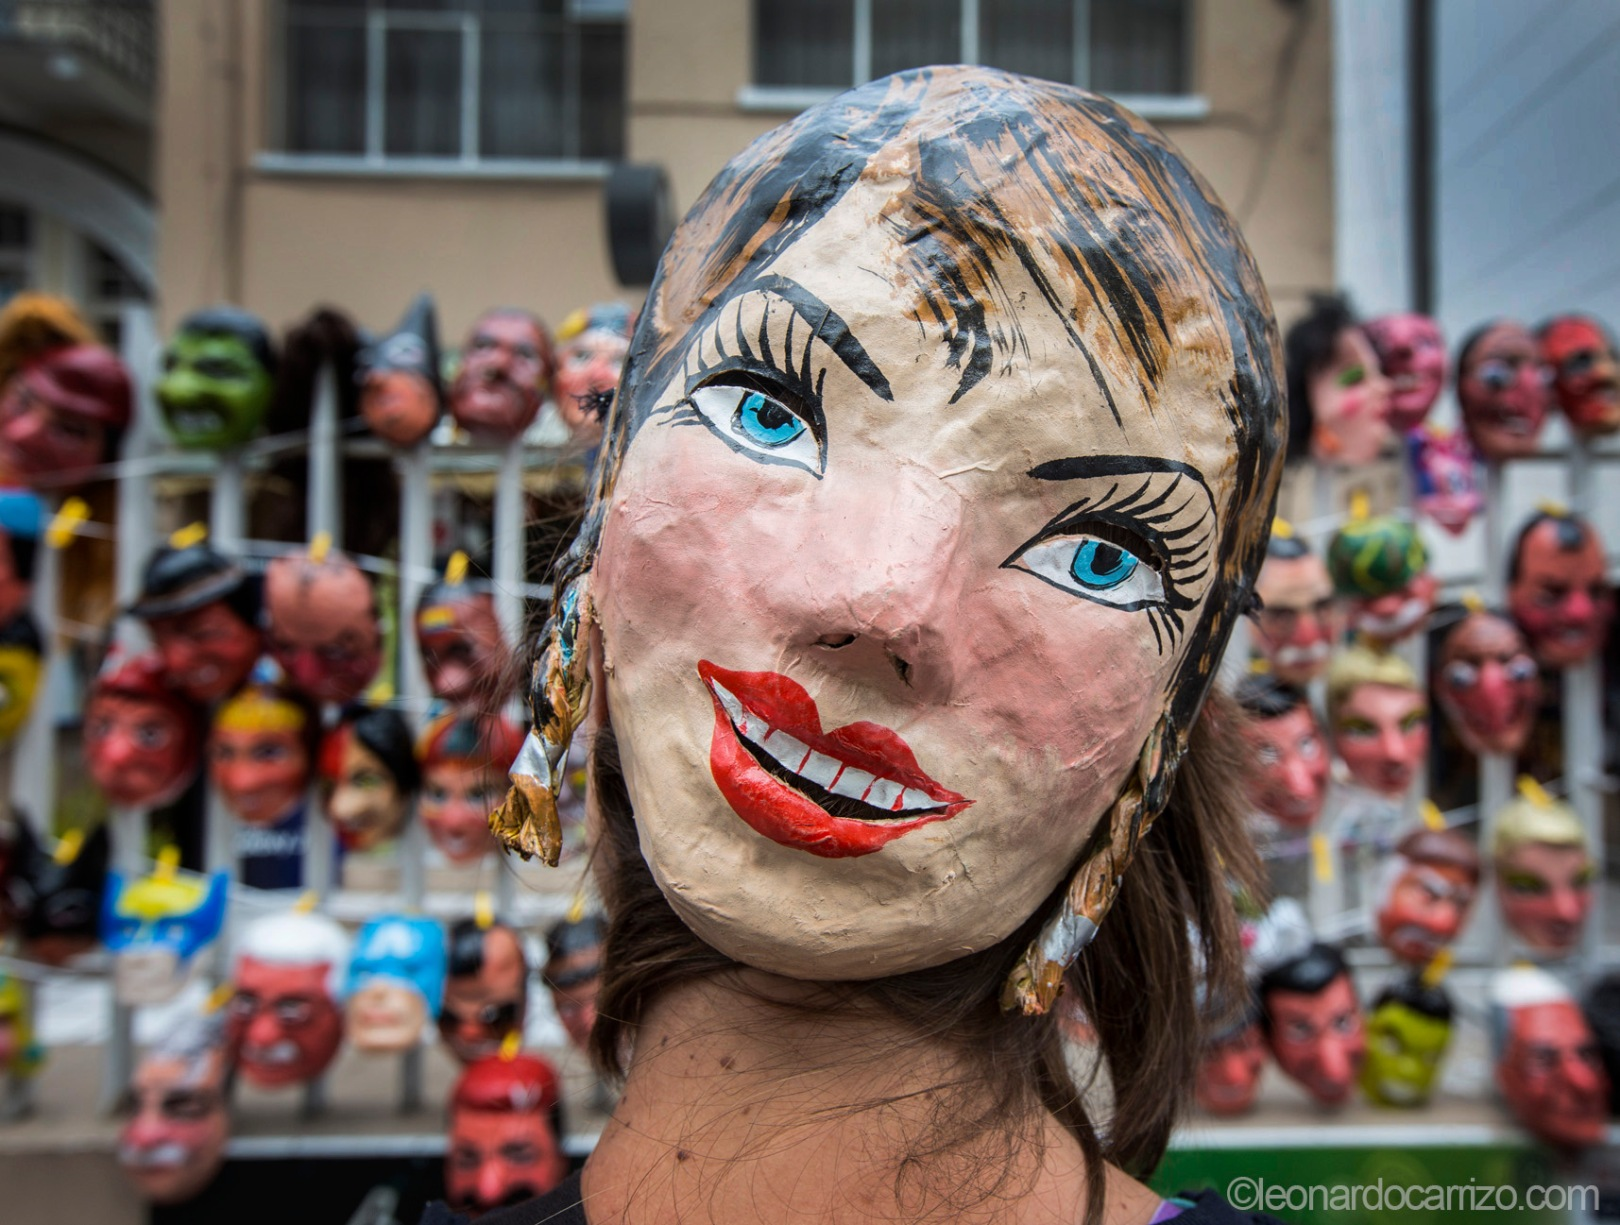 """Traditional masks, made of paper and hand painted, are used to celebrate the end of the year in Ecuador. They are use in combination with paper filled dummies created from old clothes to figurative burn the """"old year"""" at midnight and celebrate the New Year. (photo by Leonardo Carrizo)"""